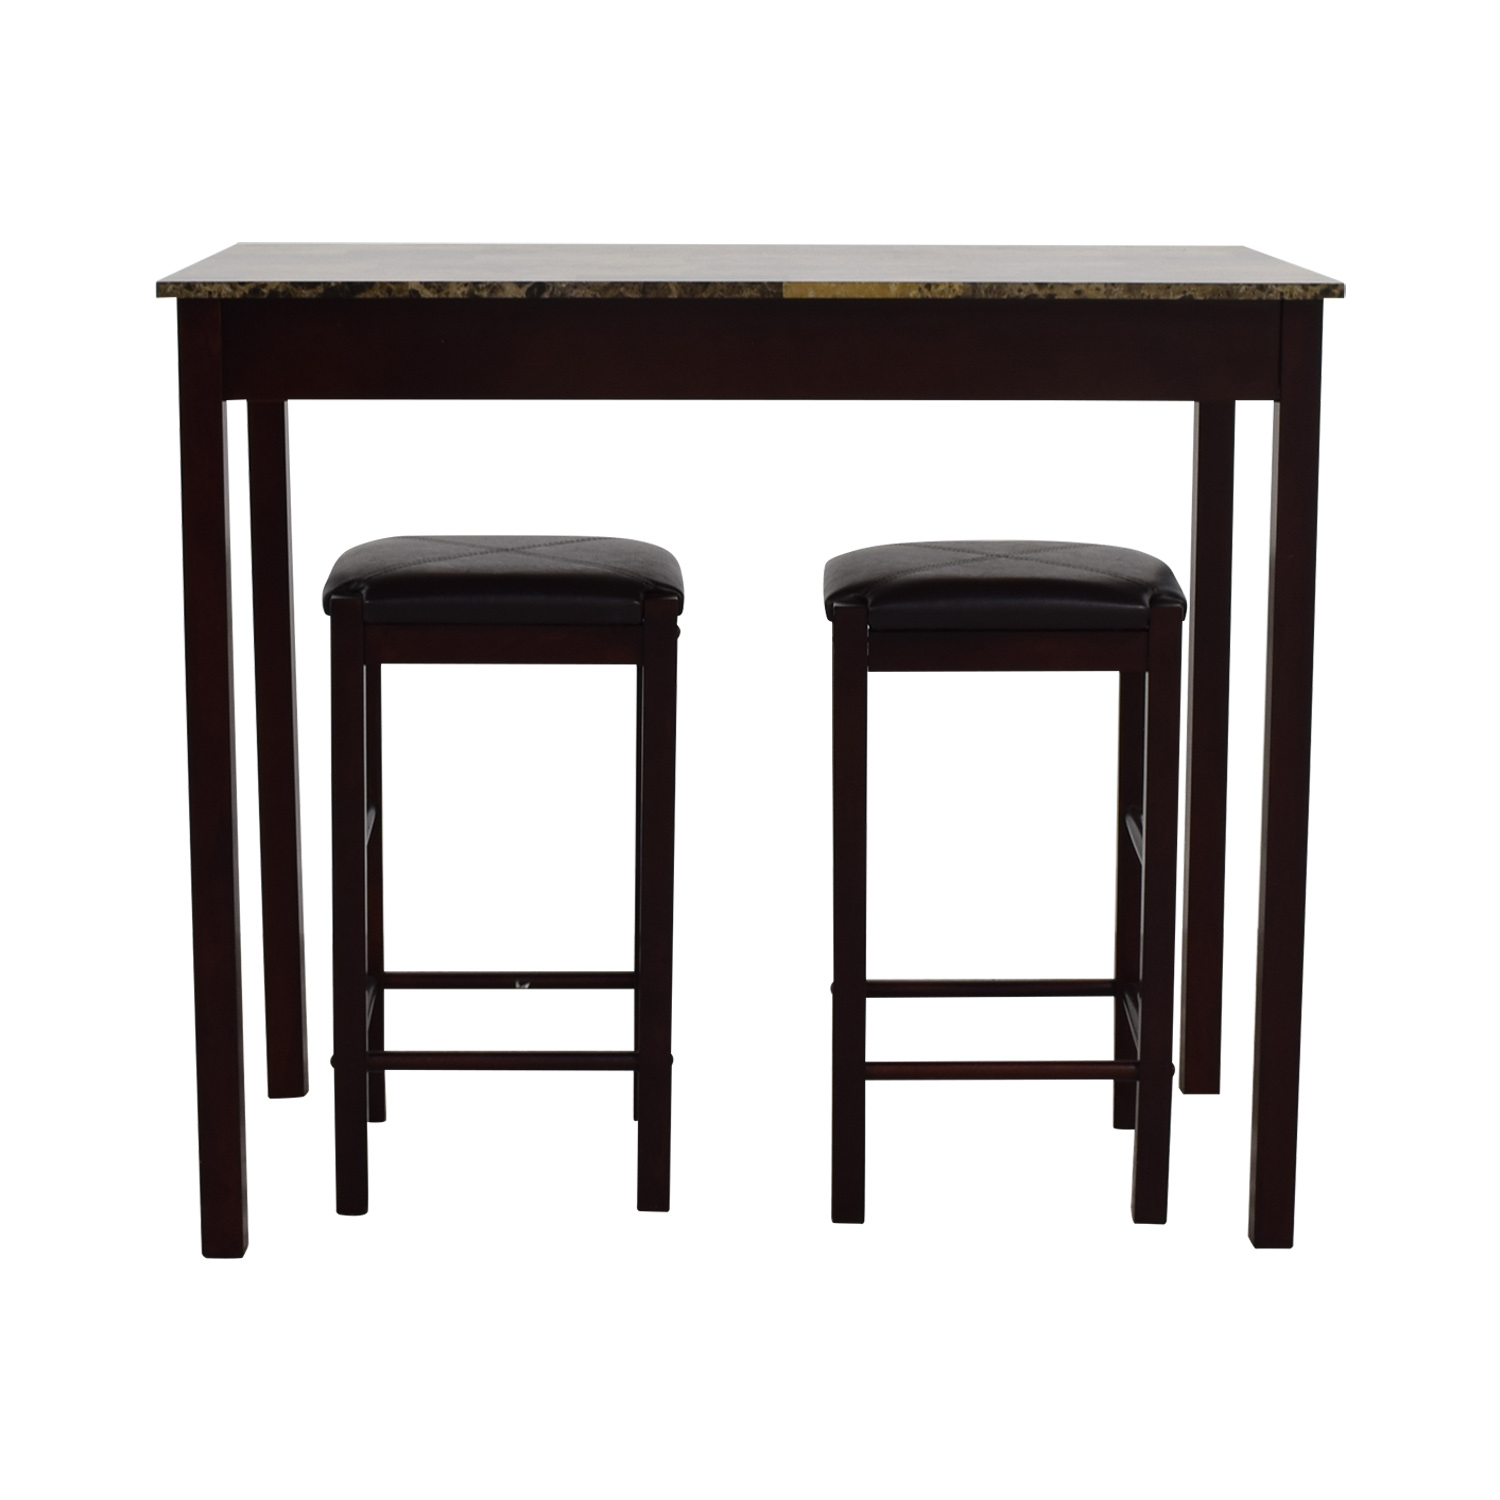 Linon Home Decor Tavern Marble Table And Stools Dimensions